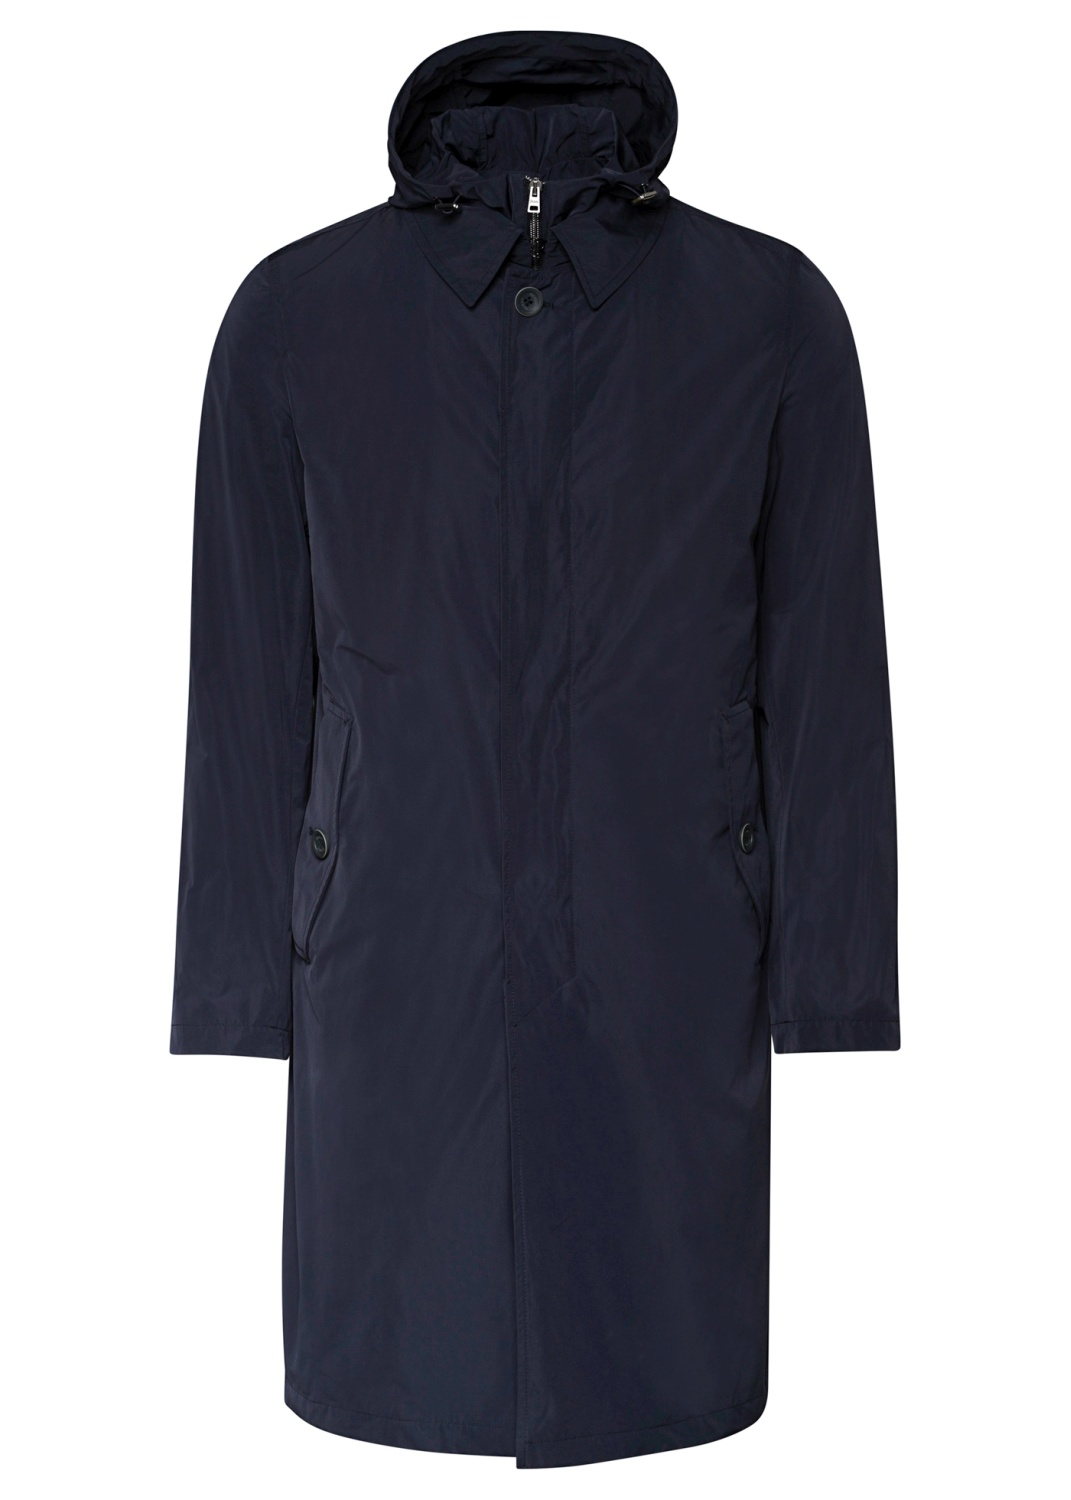 Men's Woven Raincoat image number 0